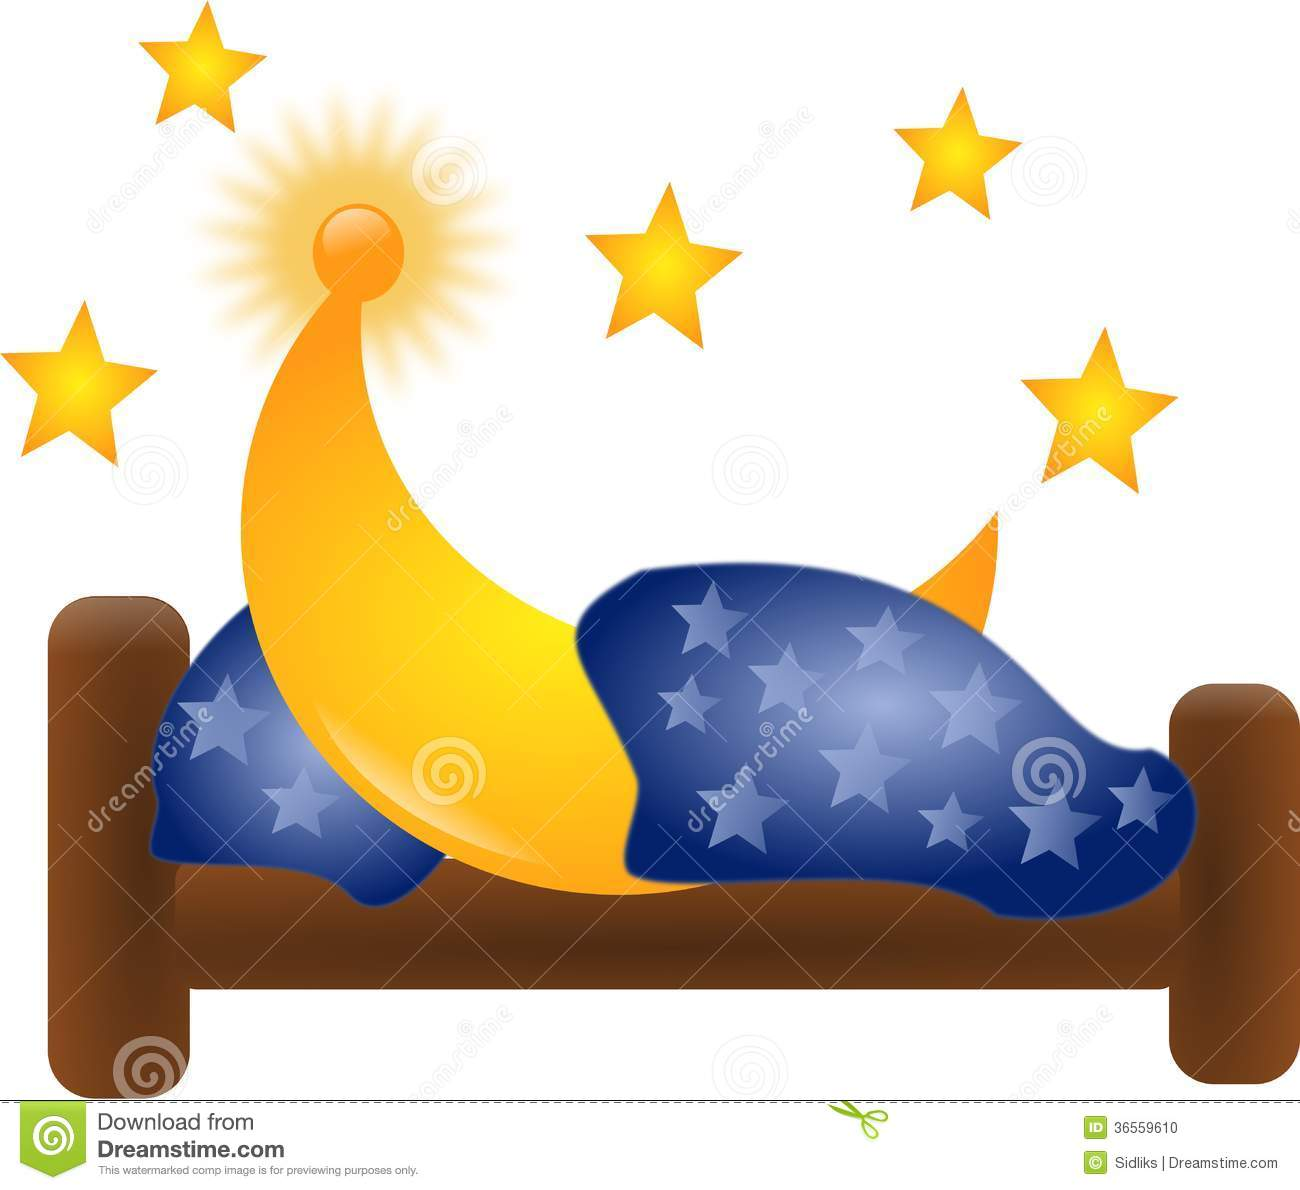 Moon in bed stock photo. Illustration of star, sleep - 36559610 for Pillow And Blanket Clipart  76uhy